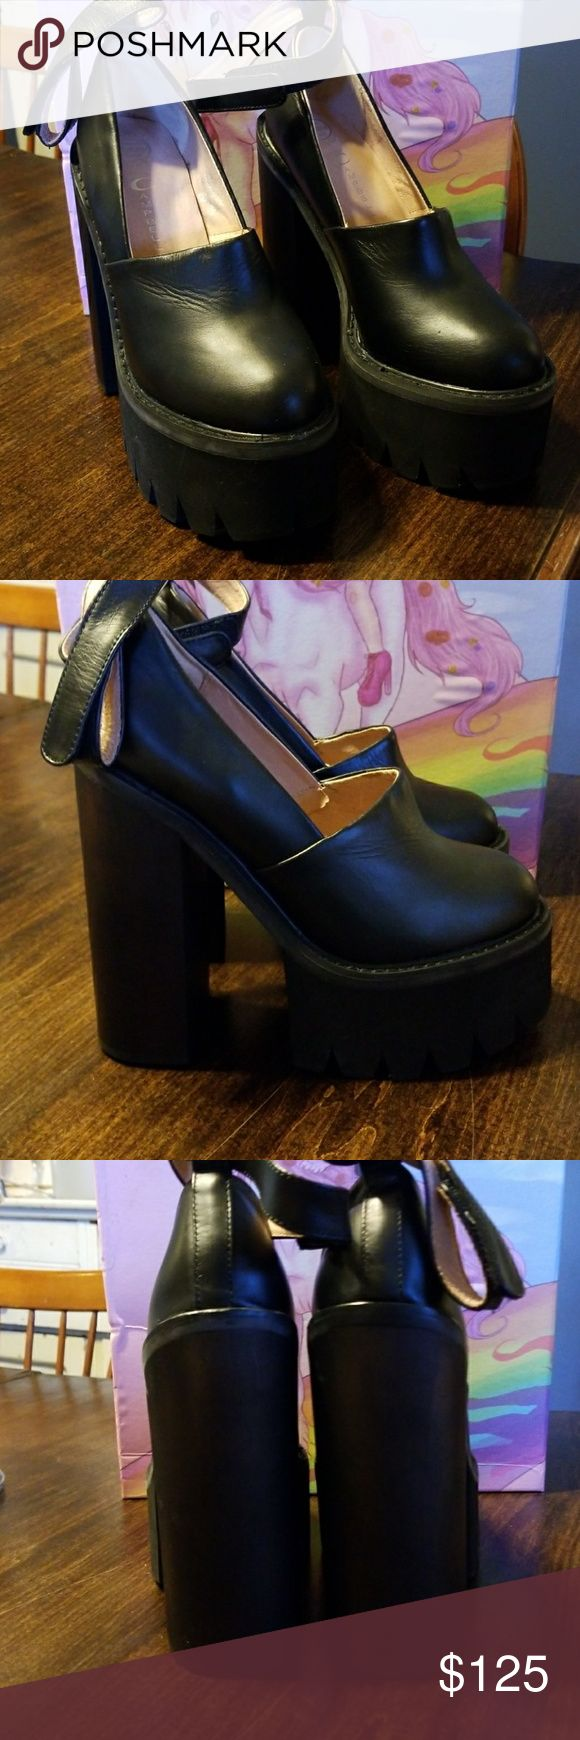 Jeffrey Campbell shoes New in Box never worn Jeffrey Campbell high heel platform Havana   Shoes Jeffrey Campbell Shoes Platforms